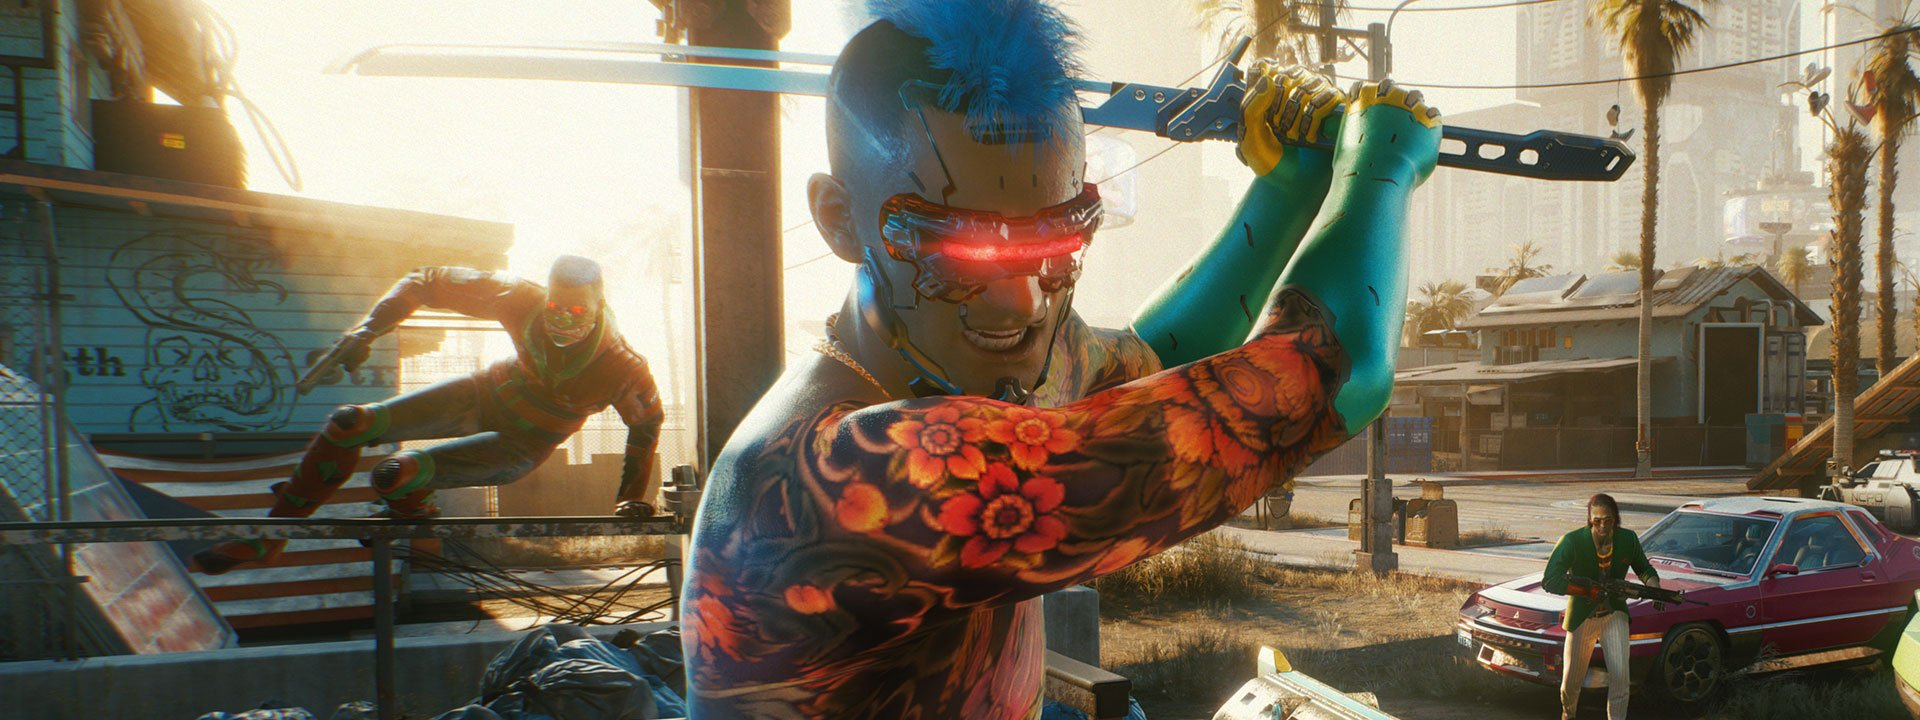 CD Projekt Red has delayed Cyberpunk 2077's DLC reveal until after release - Video Games Chronicle